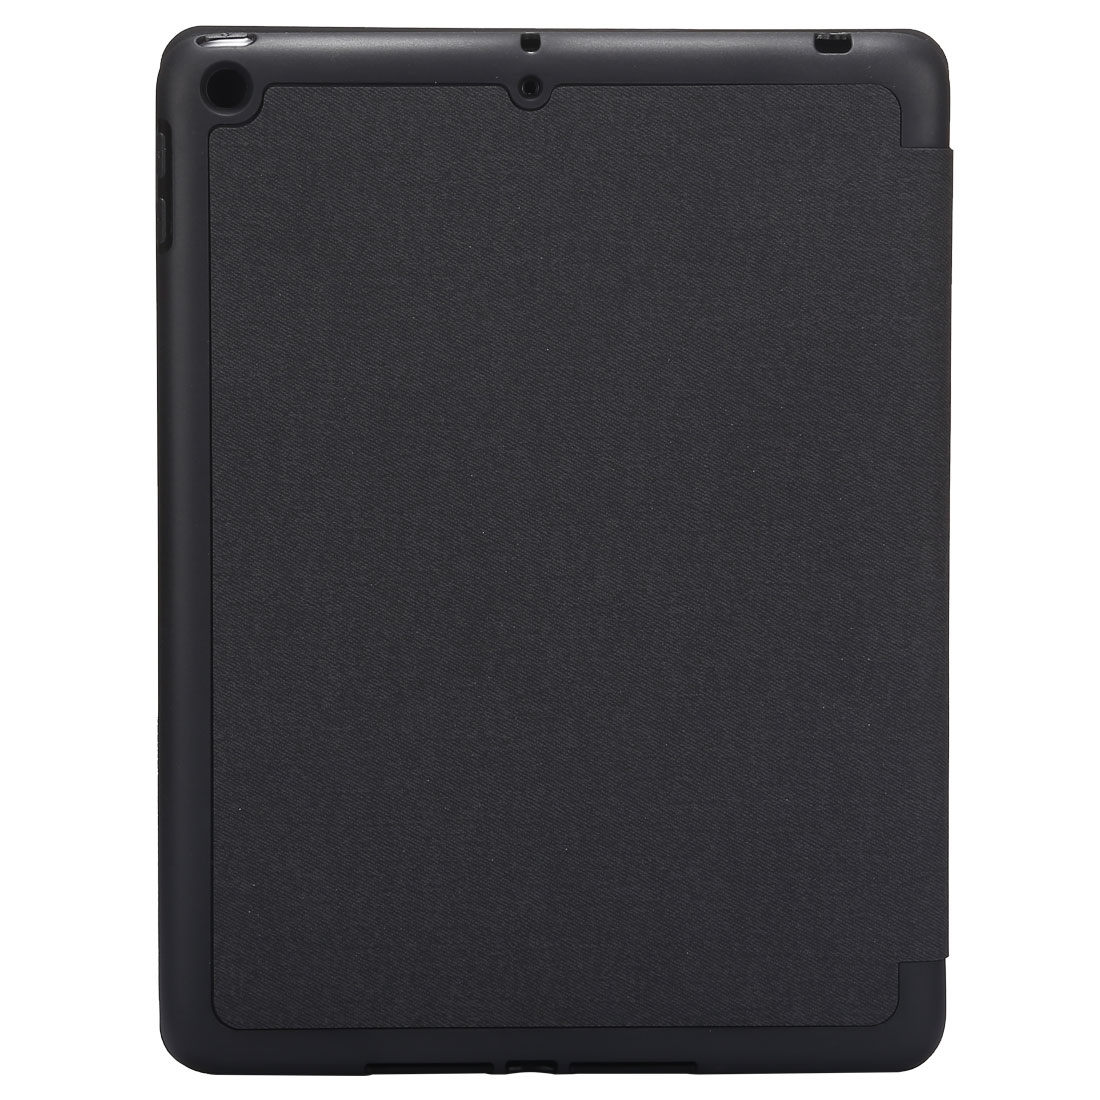 Cloth Texture Leather iPad Air 3 Case (10.5 Inch) ,with Pen Holders (Black)